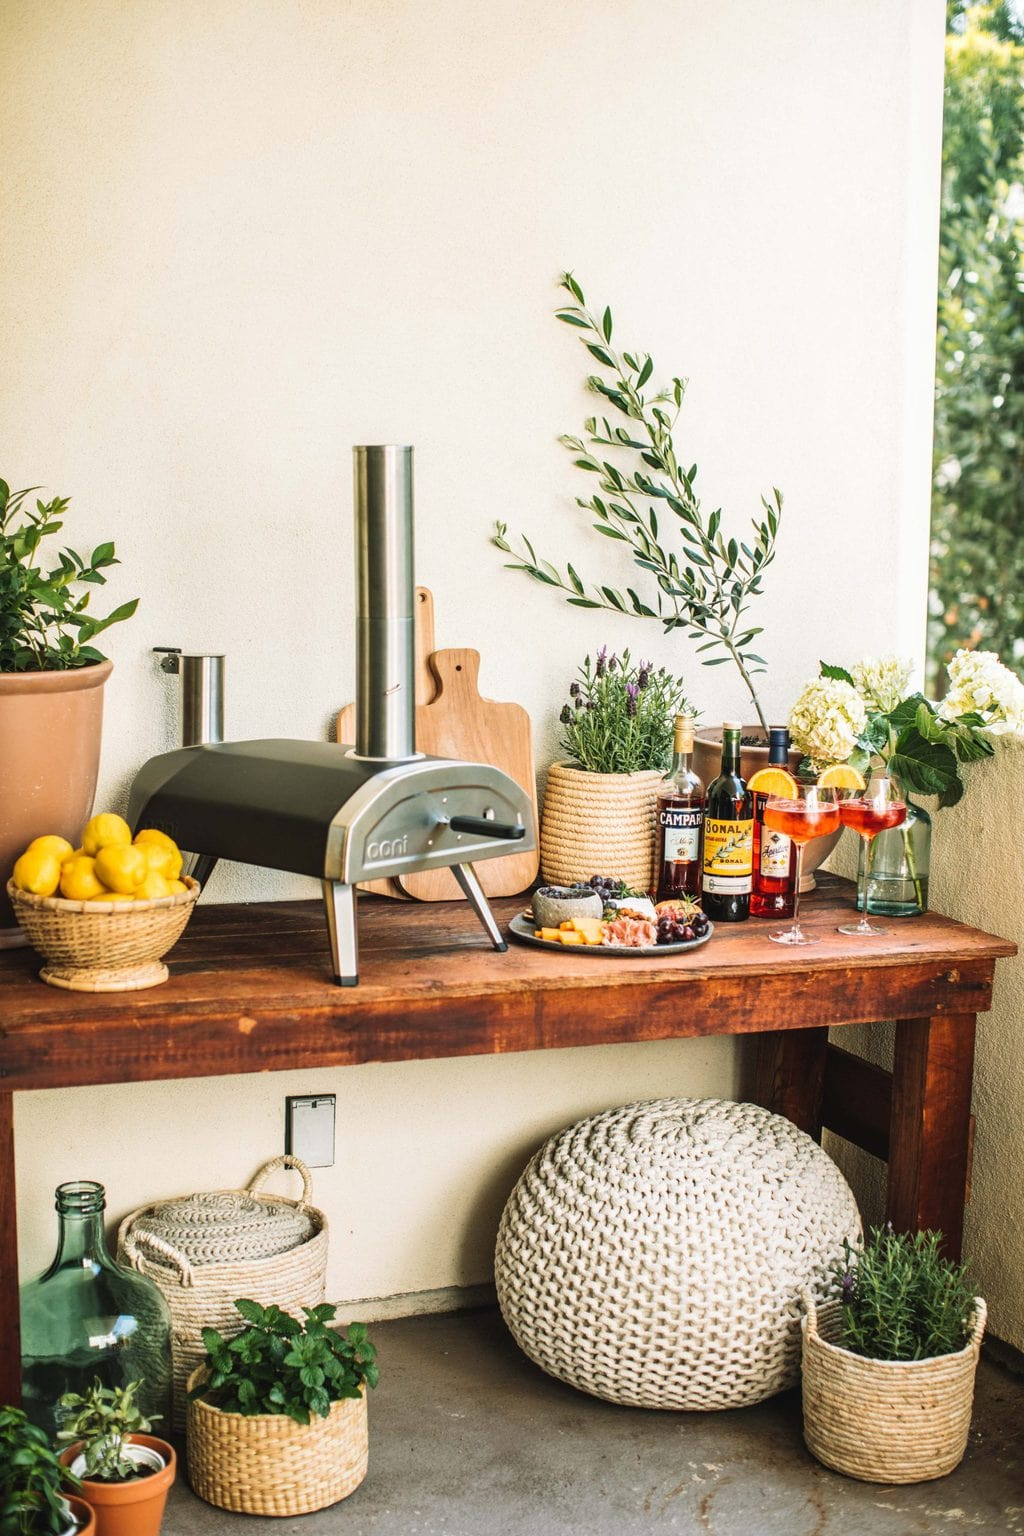 A wood fired oven pizza table decorated with baskets, planters, cocktail glasses, and a cheeseboard.